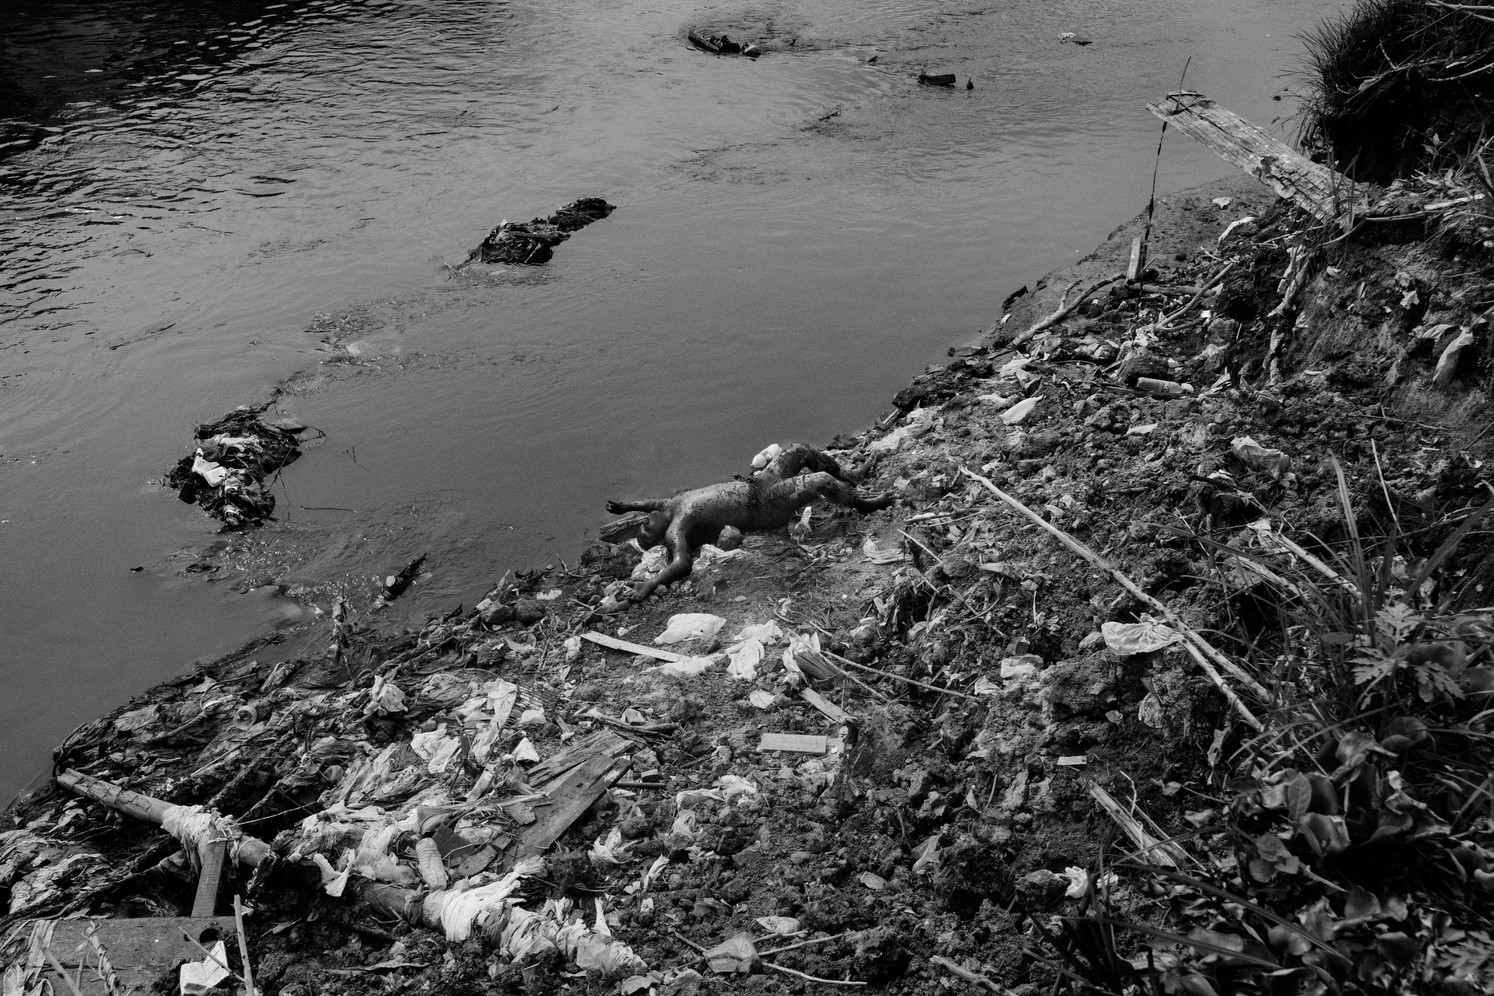 A dead body found along the banks of the river São Raimundo in Manaus. Several bullet's holes were discovered on the body. Police officers claimed that the man was killed. The Brazilian Amazonian capital Manaus is currently experiencing massive homicide rates, five times higher than Sao Paulo's and up 168% in ten years, with local drug gang Familia Do Norte fighting a bloody turf war with the encroaching Primeiro Comando da Capital from Sao Paulo. Manaus is Brazil's closest big city to nearby drug production territories in Colombia and Peru which makes it a major transit point for Brazil (world's second largest cocaine consumer) and Europe, while in recent years, the city has also become a major consumption destination as the gangs flood the streets with Oxi, a cheap and destructive crack cocaine derivative.